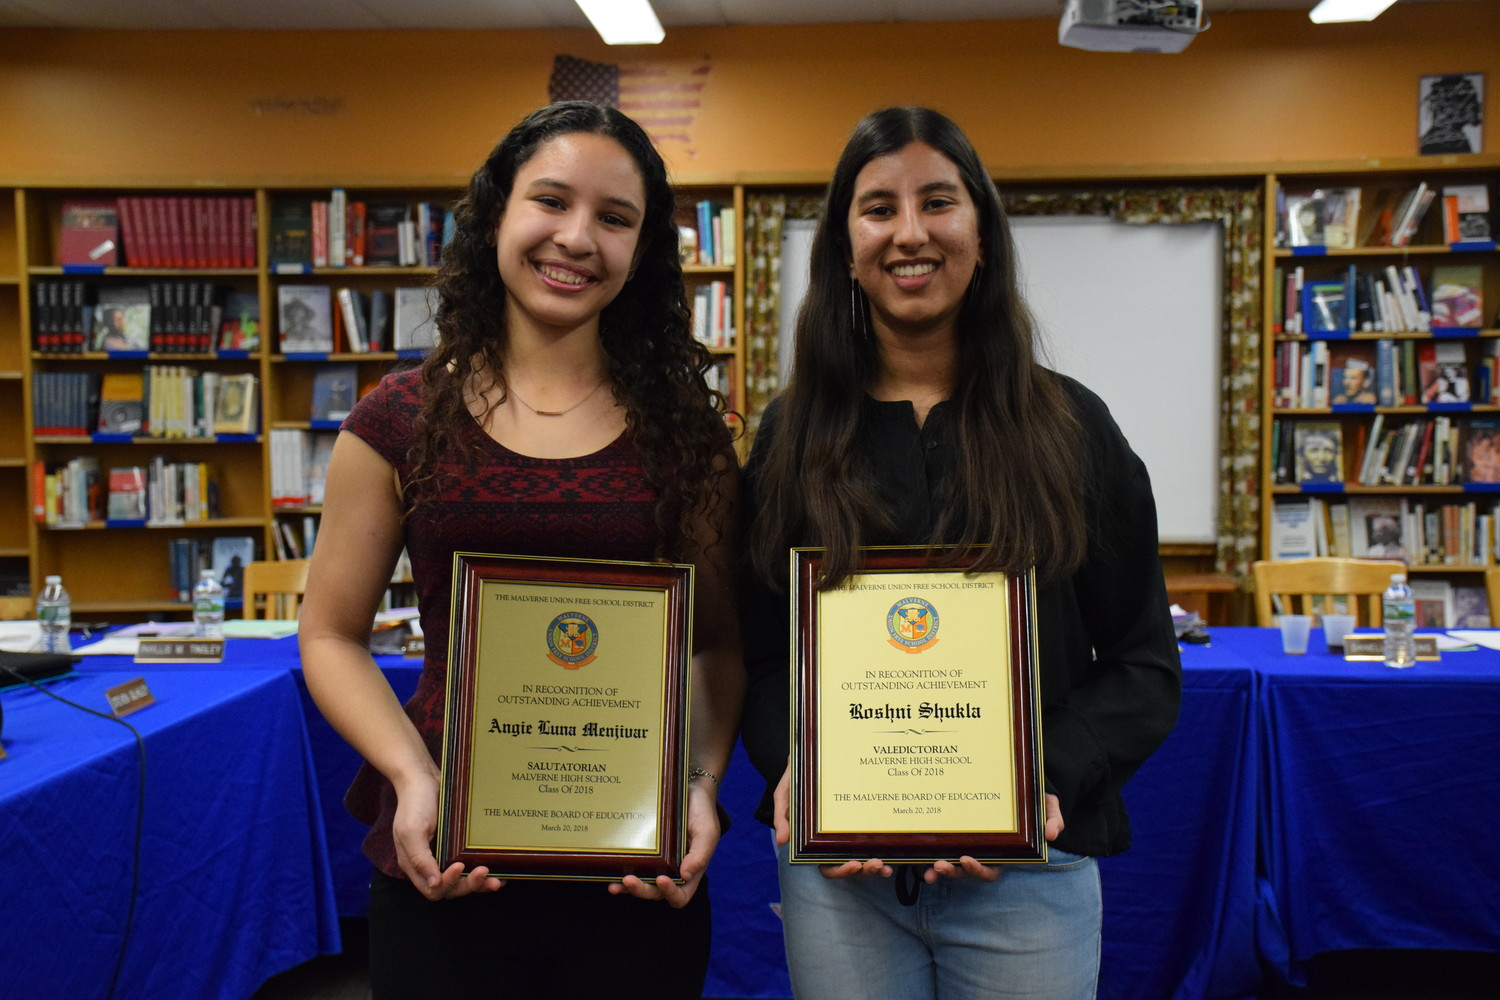 Angie Luna Menjivar, left, and Roshni Shukla received plaques from the Malverne School District's Board of Education recognizing their academic success.